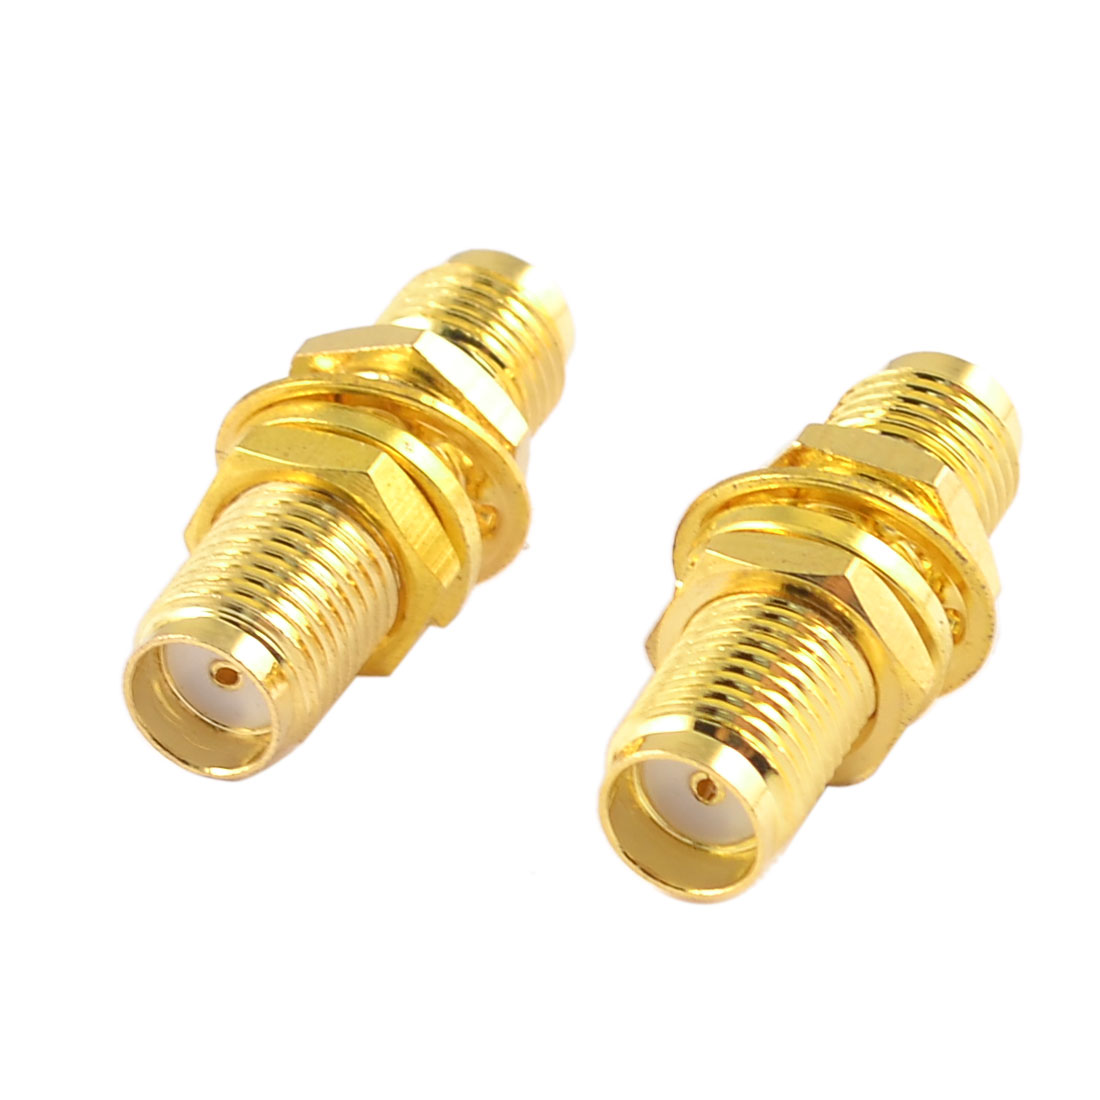 2 Pcs Straight SMA Female to Female Connector Adapter Gold Tone